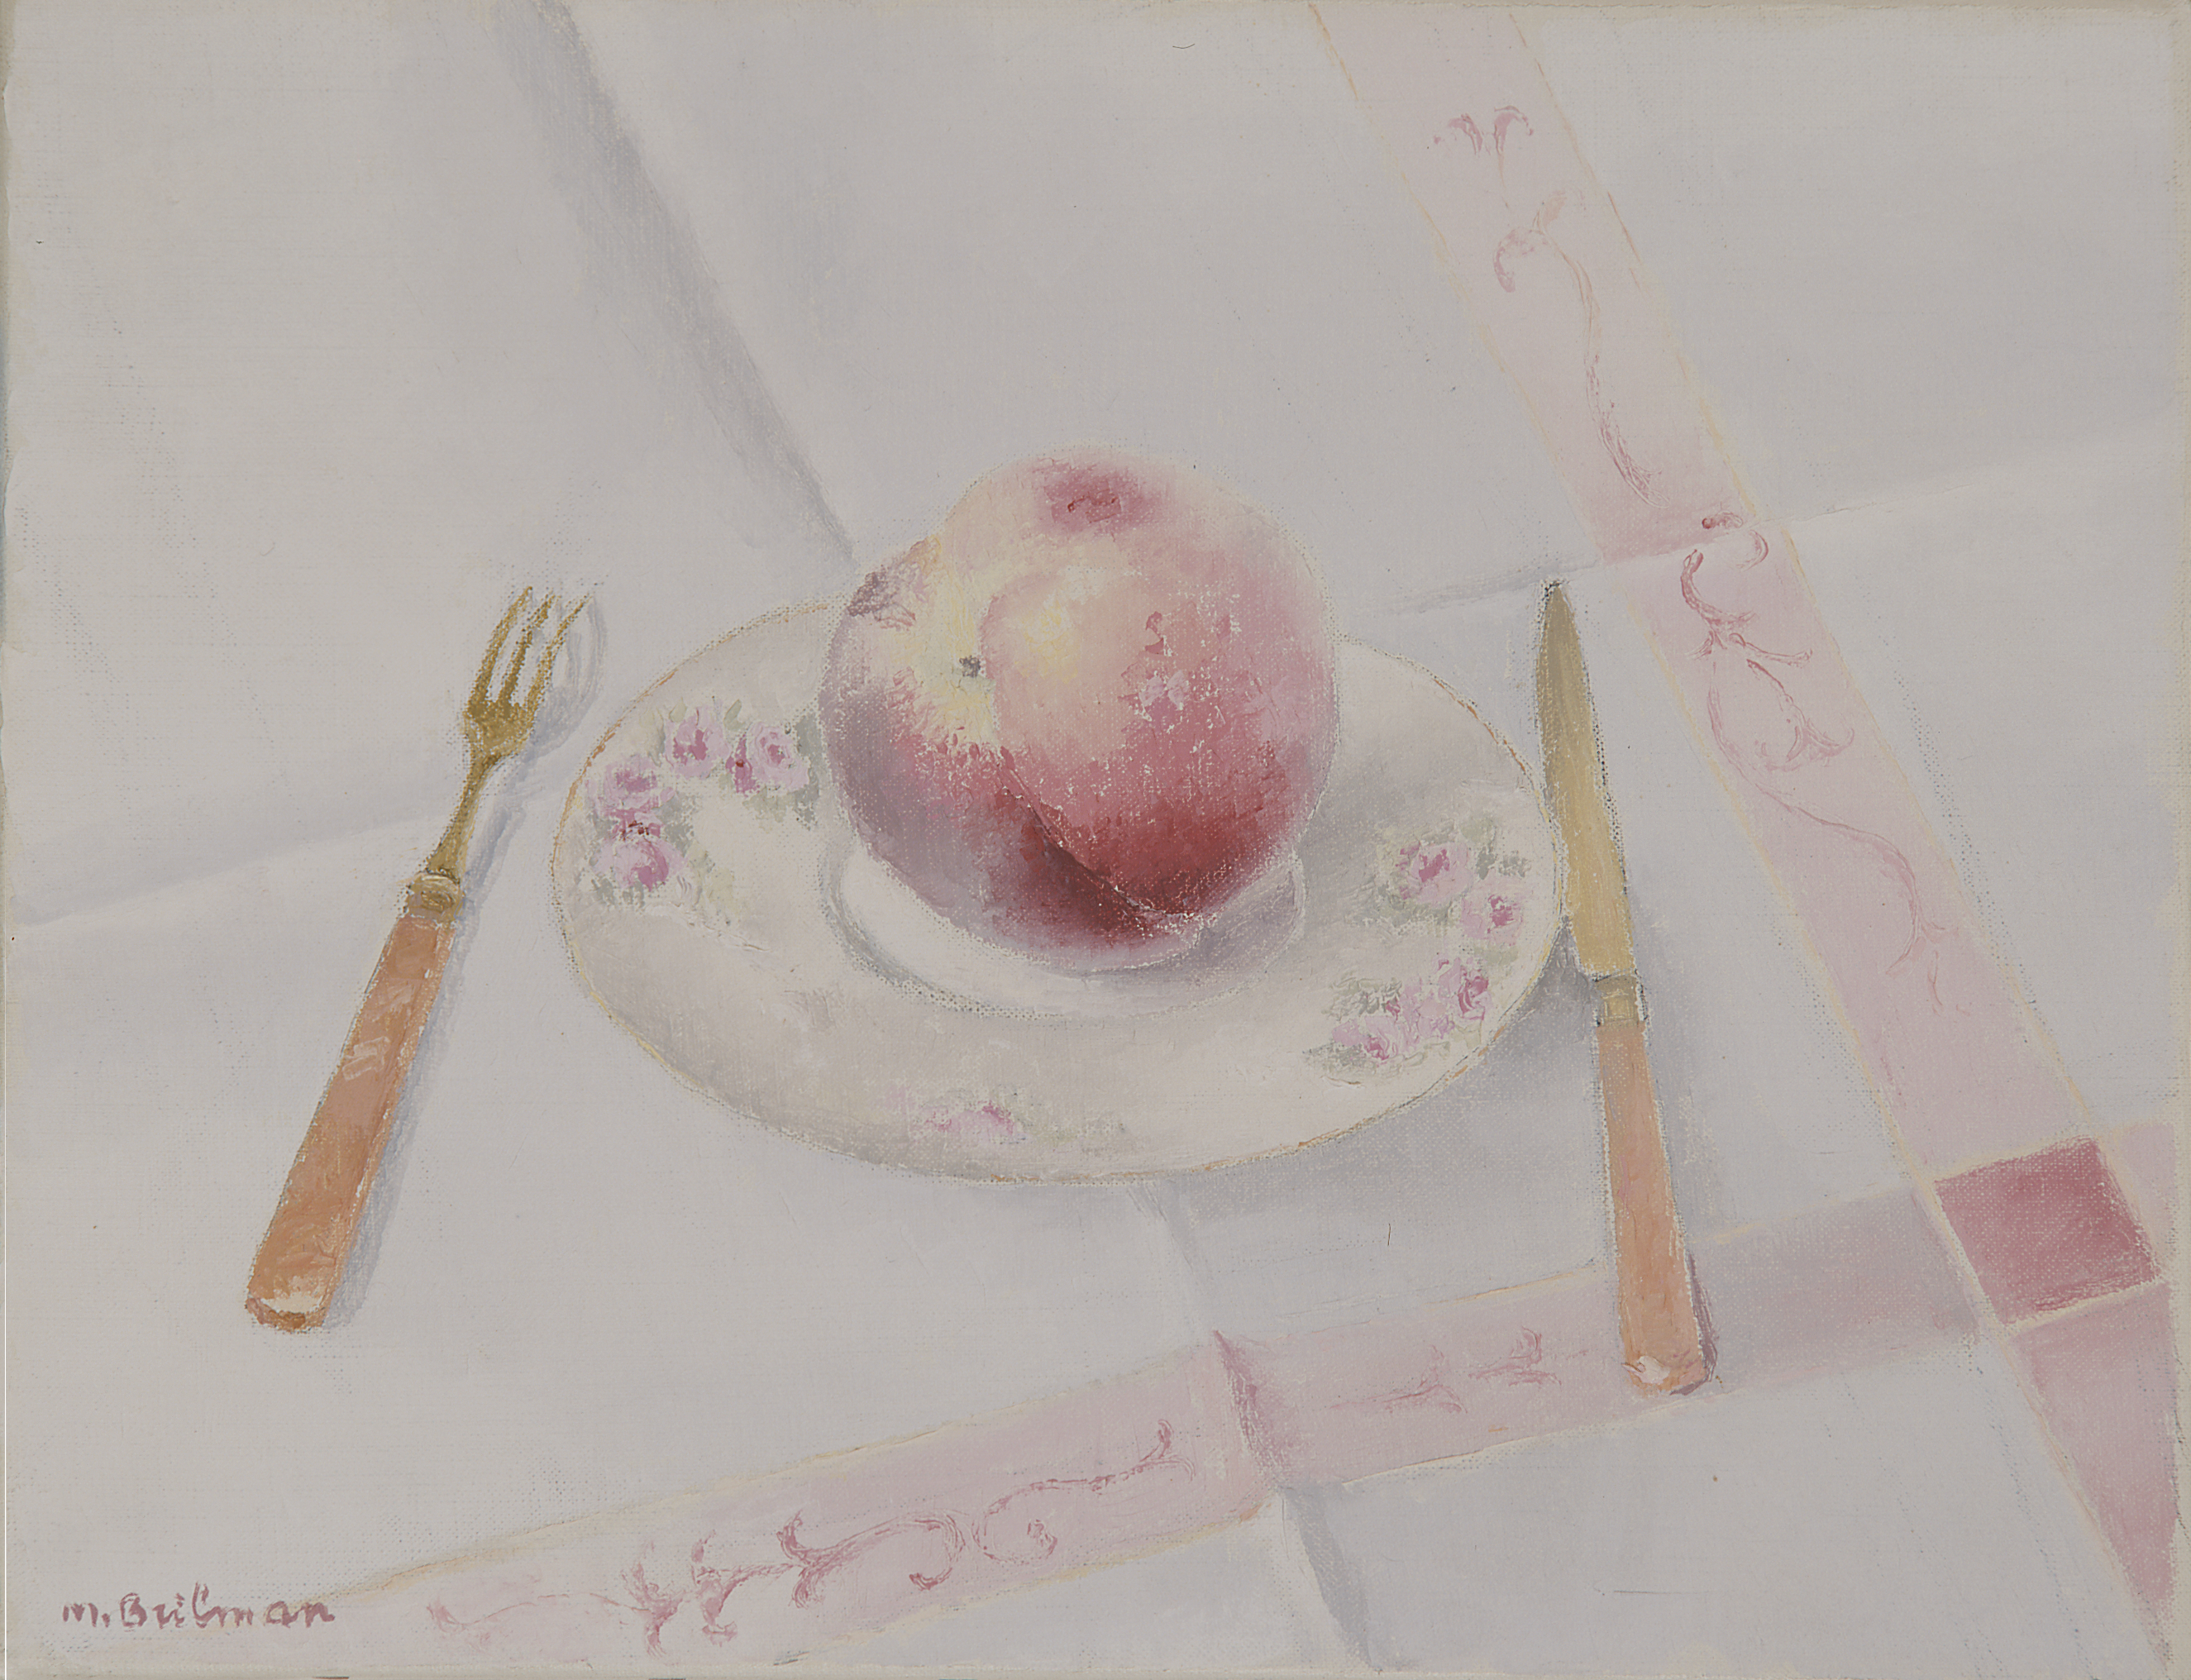 Peach and cutlery